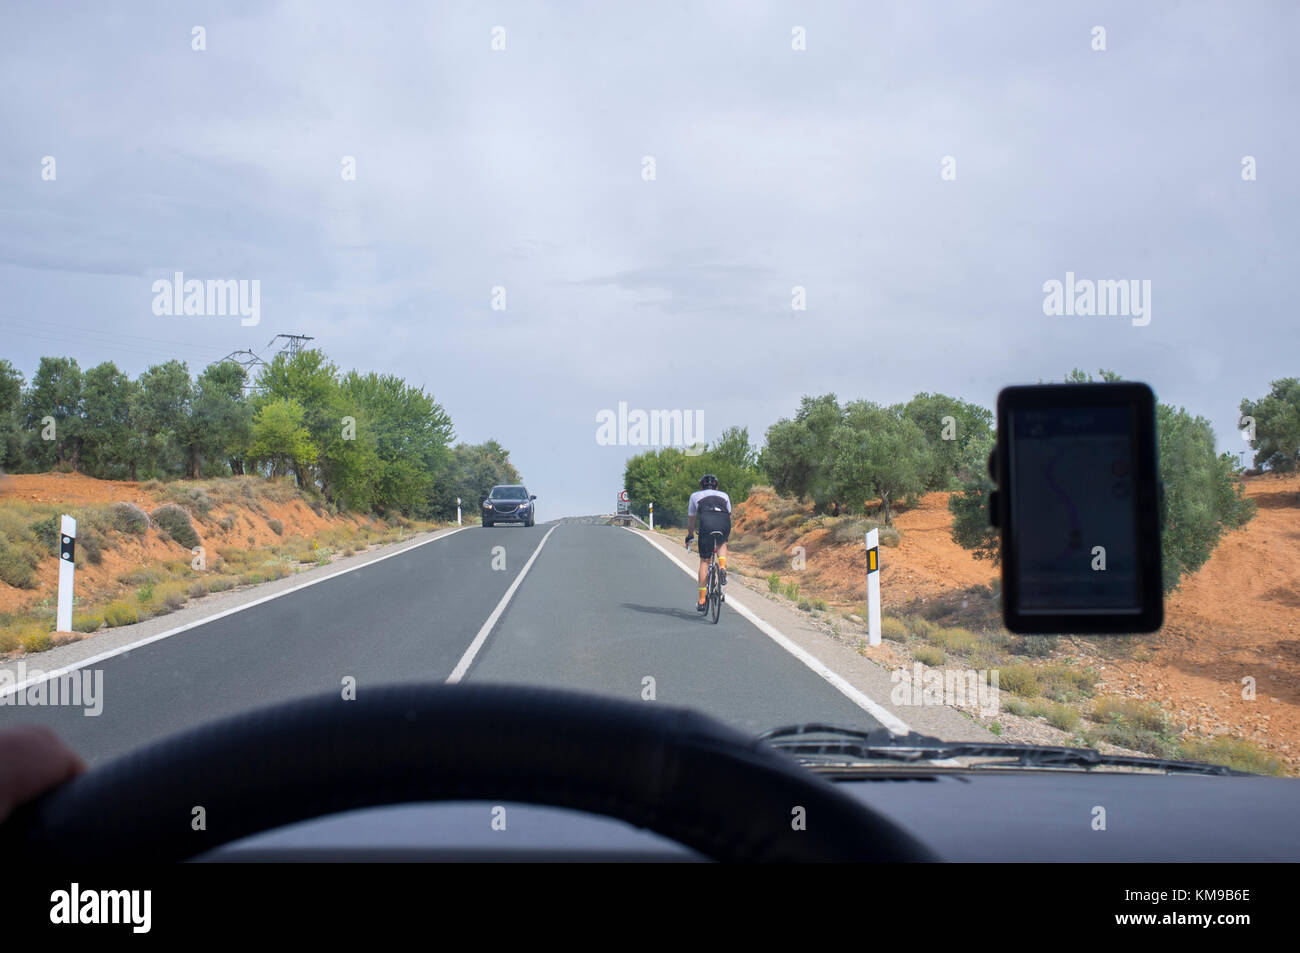 Driving slowly behind a cyclist by local road over solid line. View from the inside of the car - Stock Image